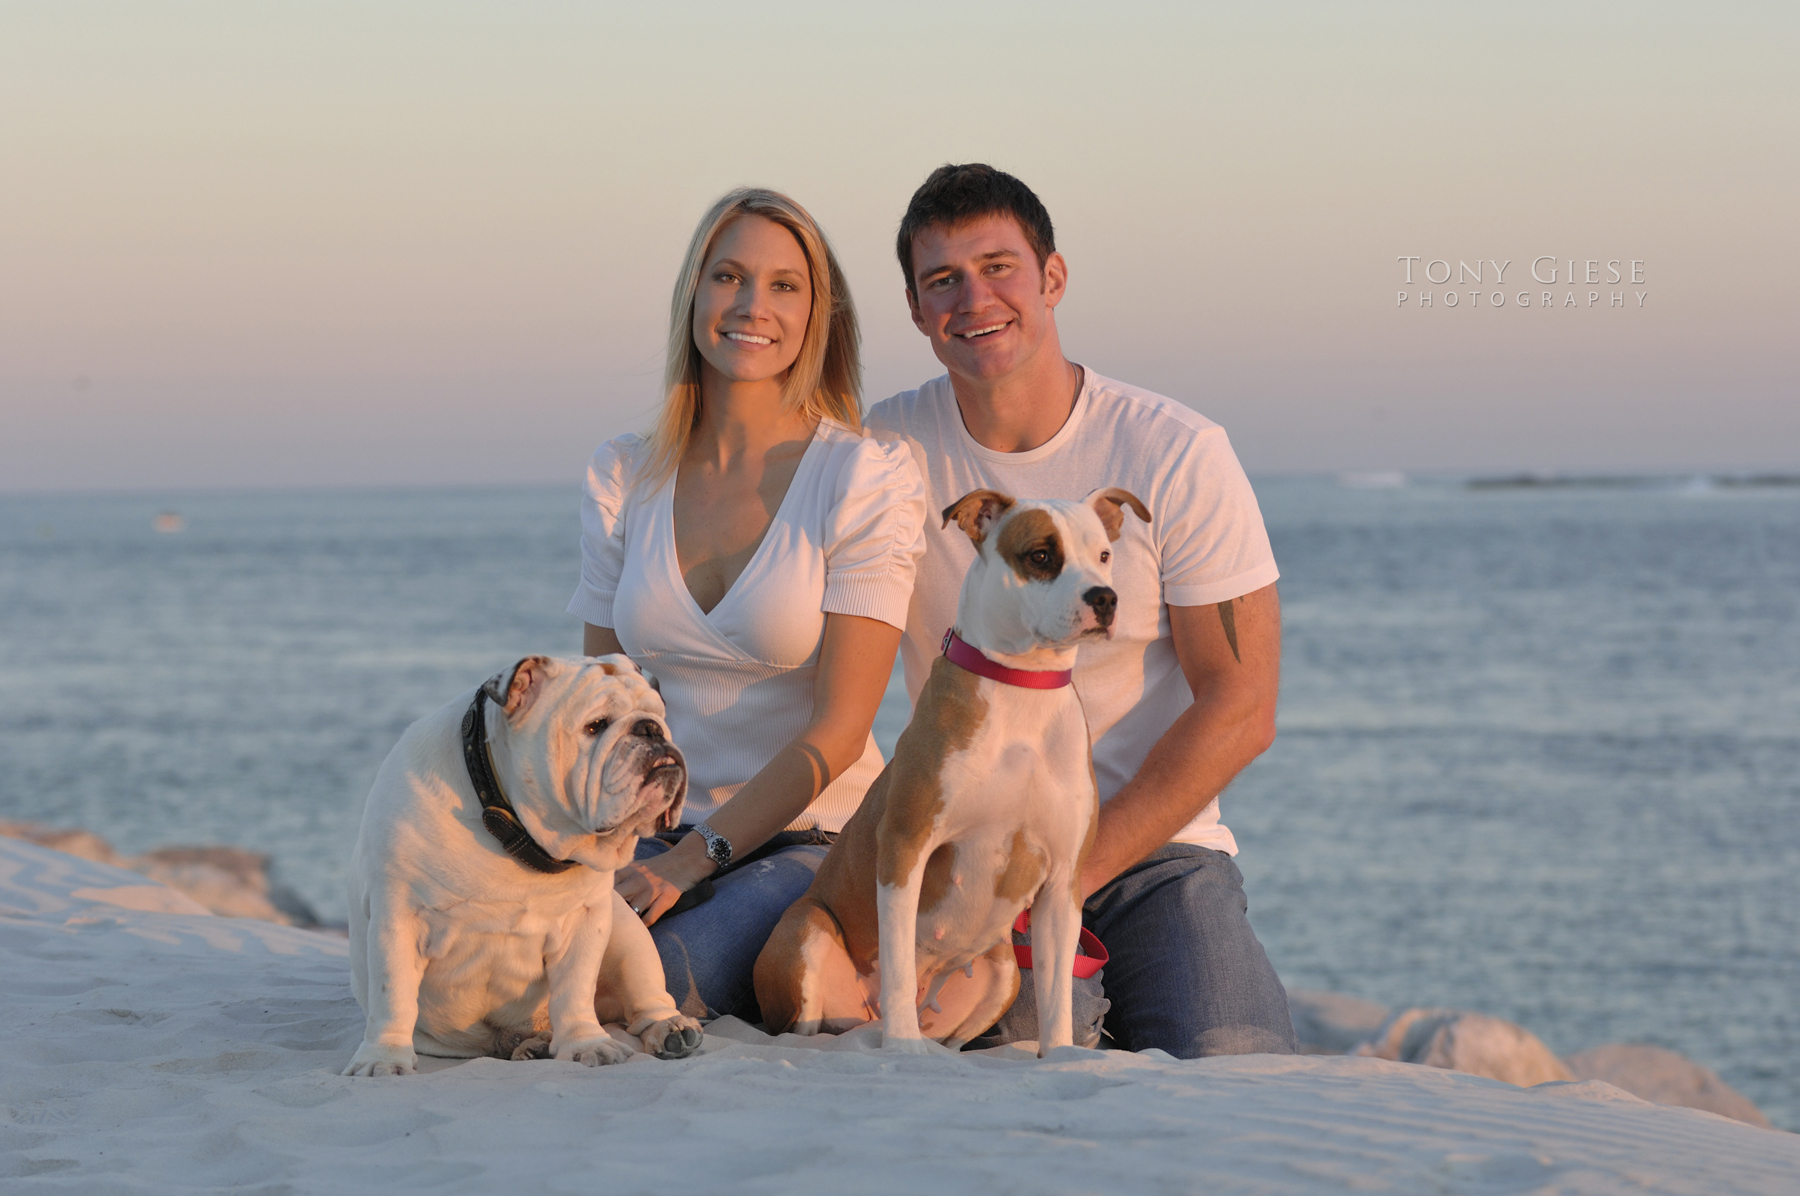 Dusk Family portrait session with two dogs at Lighthouse Point Park, Ponce Inlet, Florida.